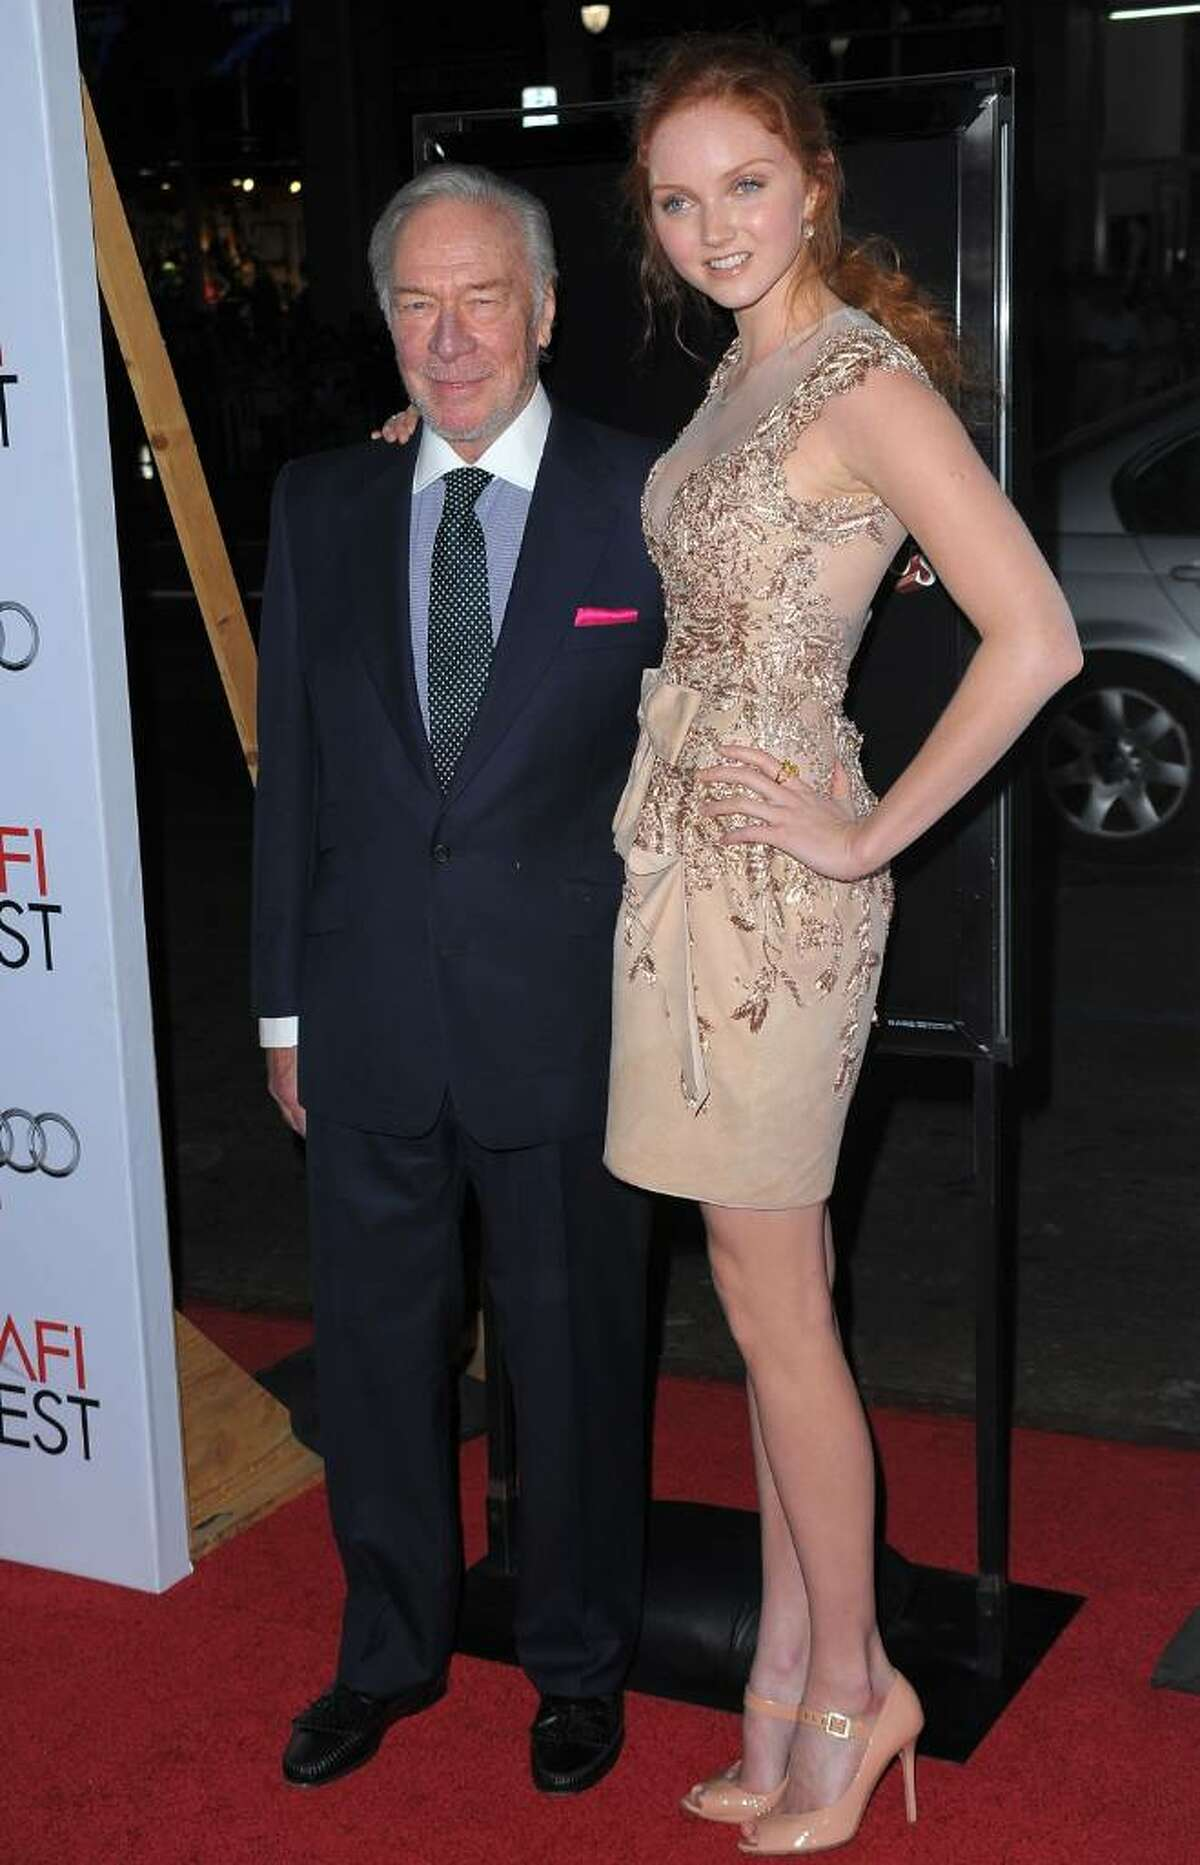 LOS ANGELES, CA - NOVEMBER 02: Christopher Plummer and Lily Cole arrive at AFI FEST 2009 screening of